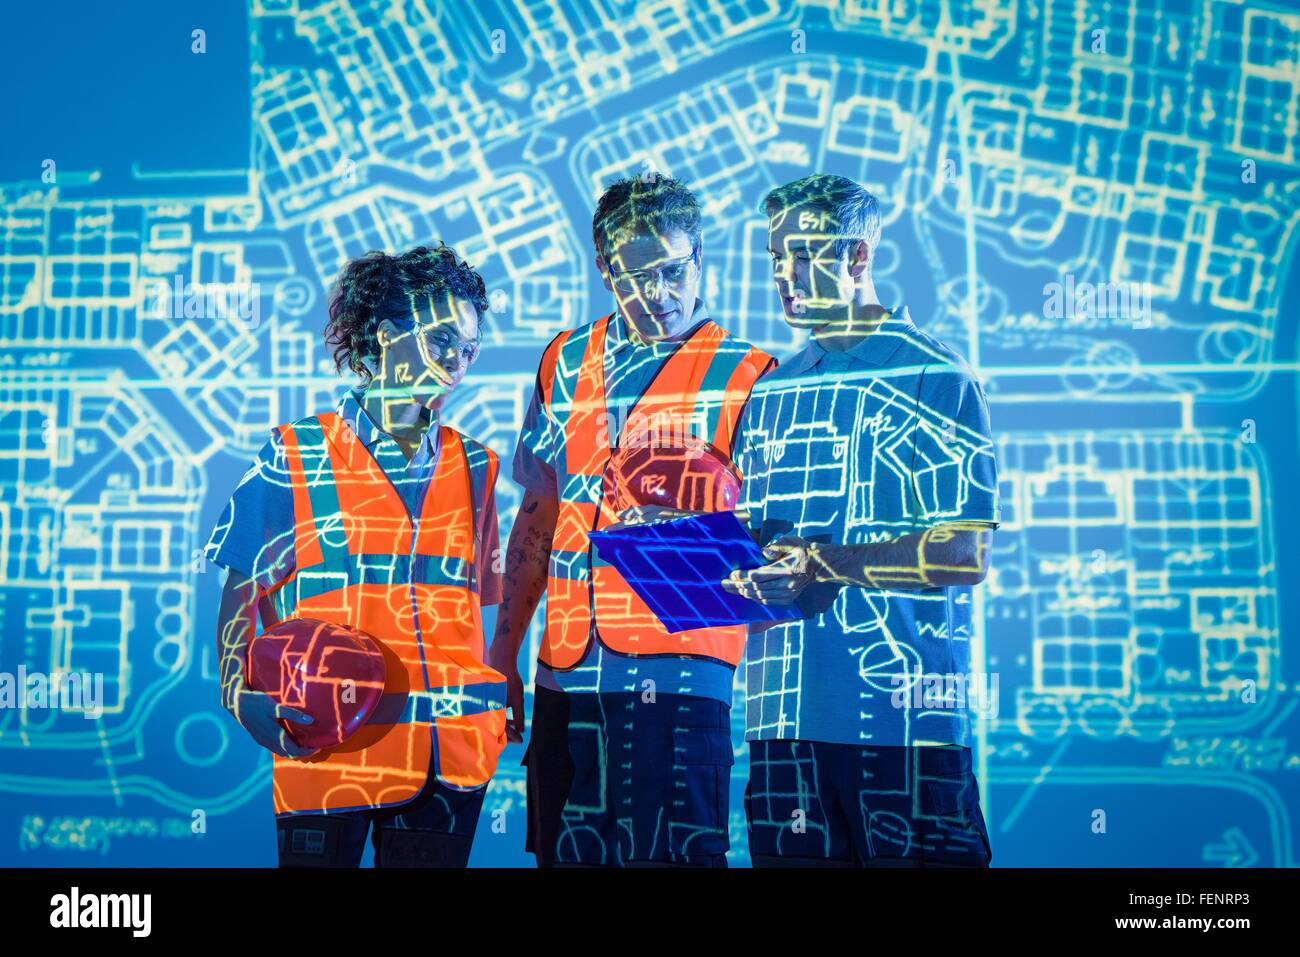 Engineers in discussion with projected plans - Stock Image